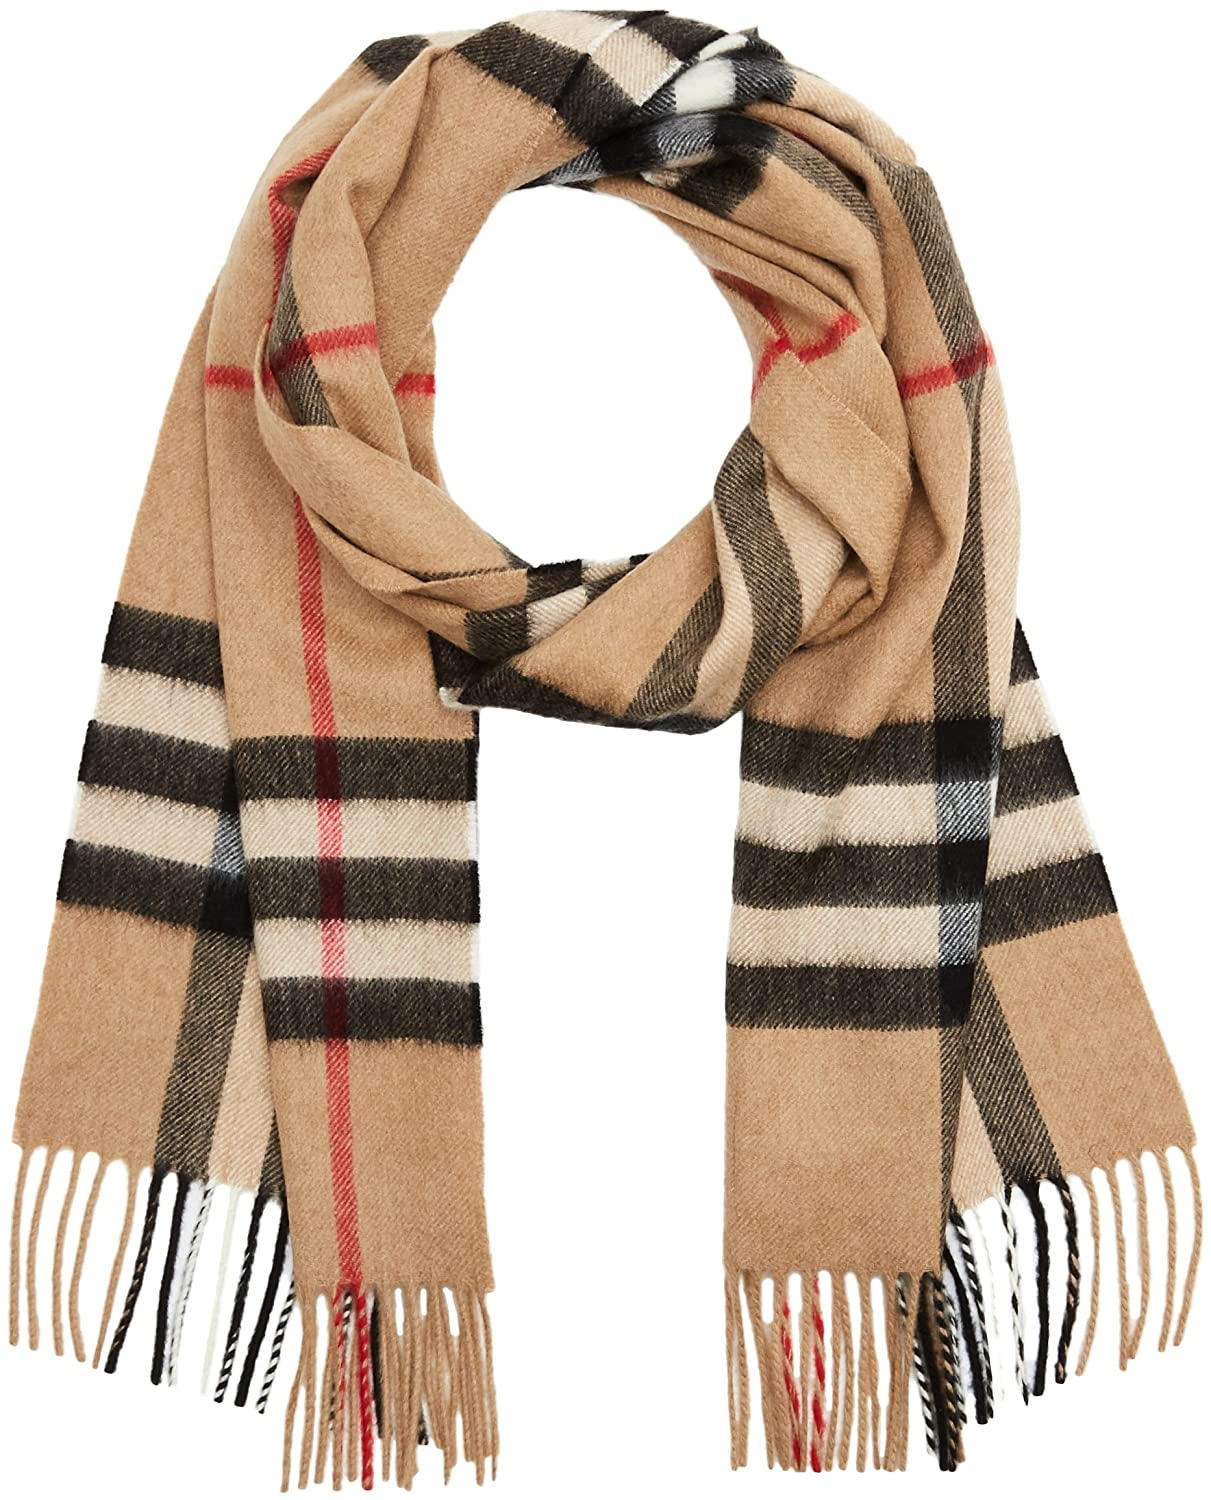 d943bac654f47 BURBERRY Women s Classic Scarf